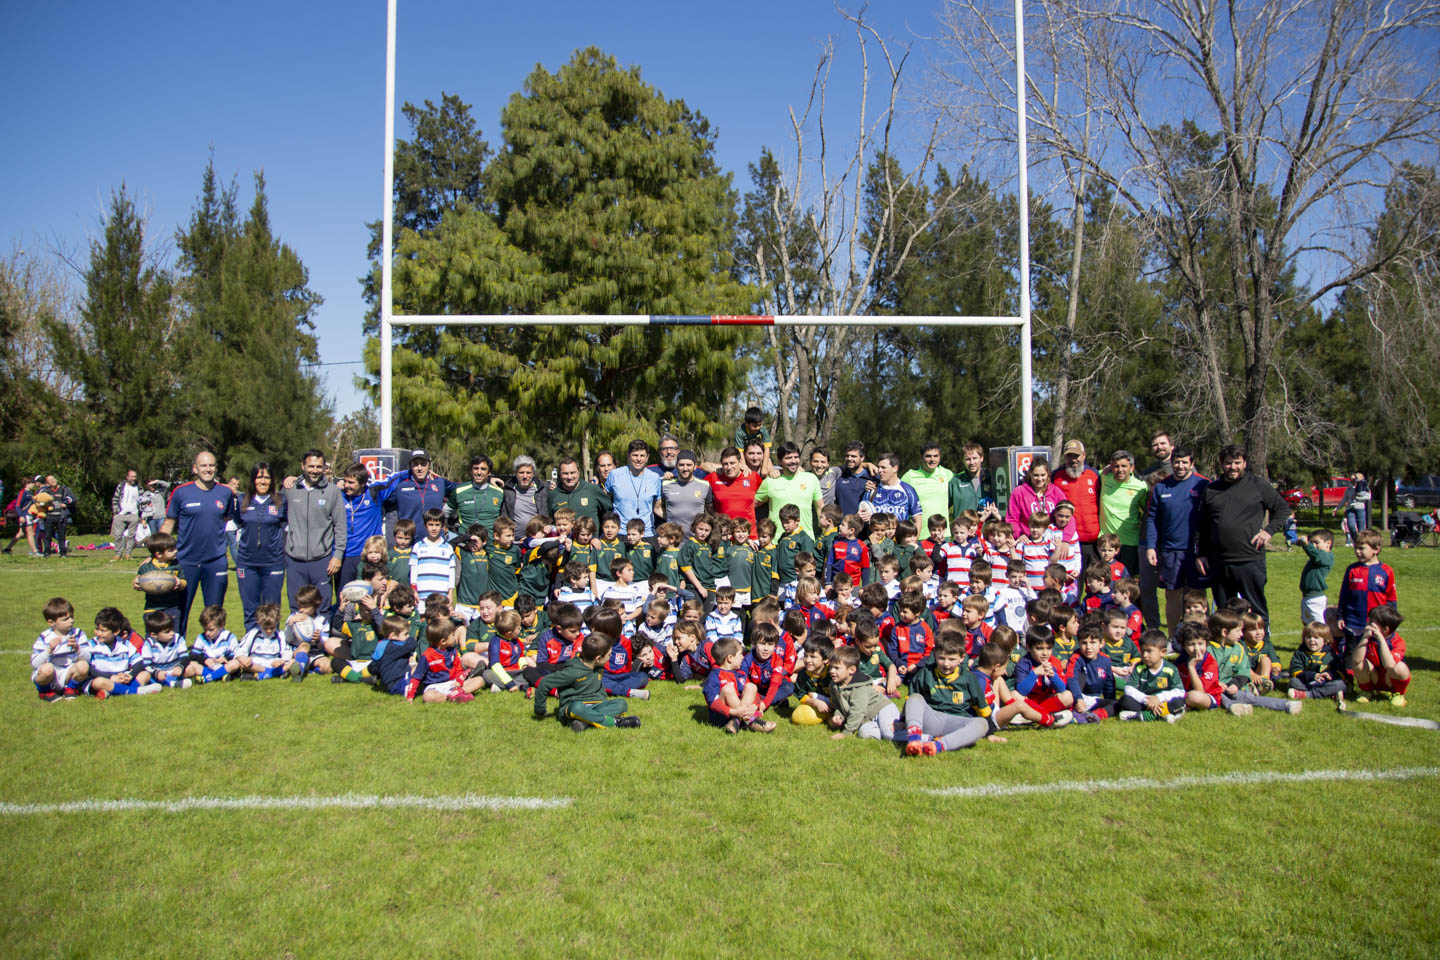 https://clubsanluis.com.ar/wp-content/uploads/2019/09/sl-31-8-inf-rugby-23.jpg